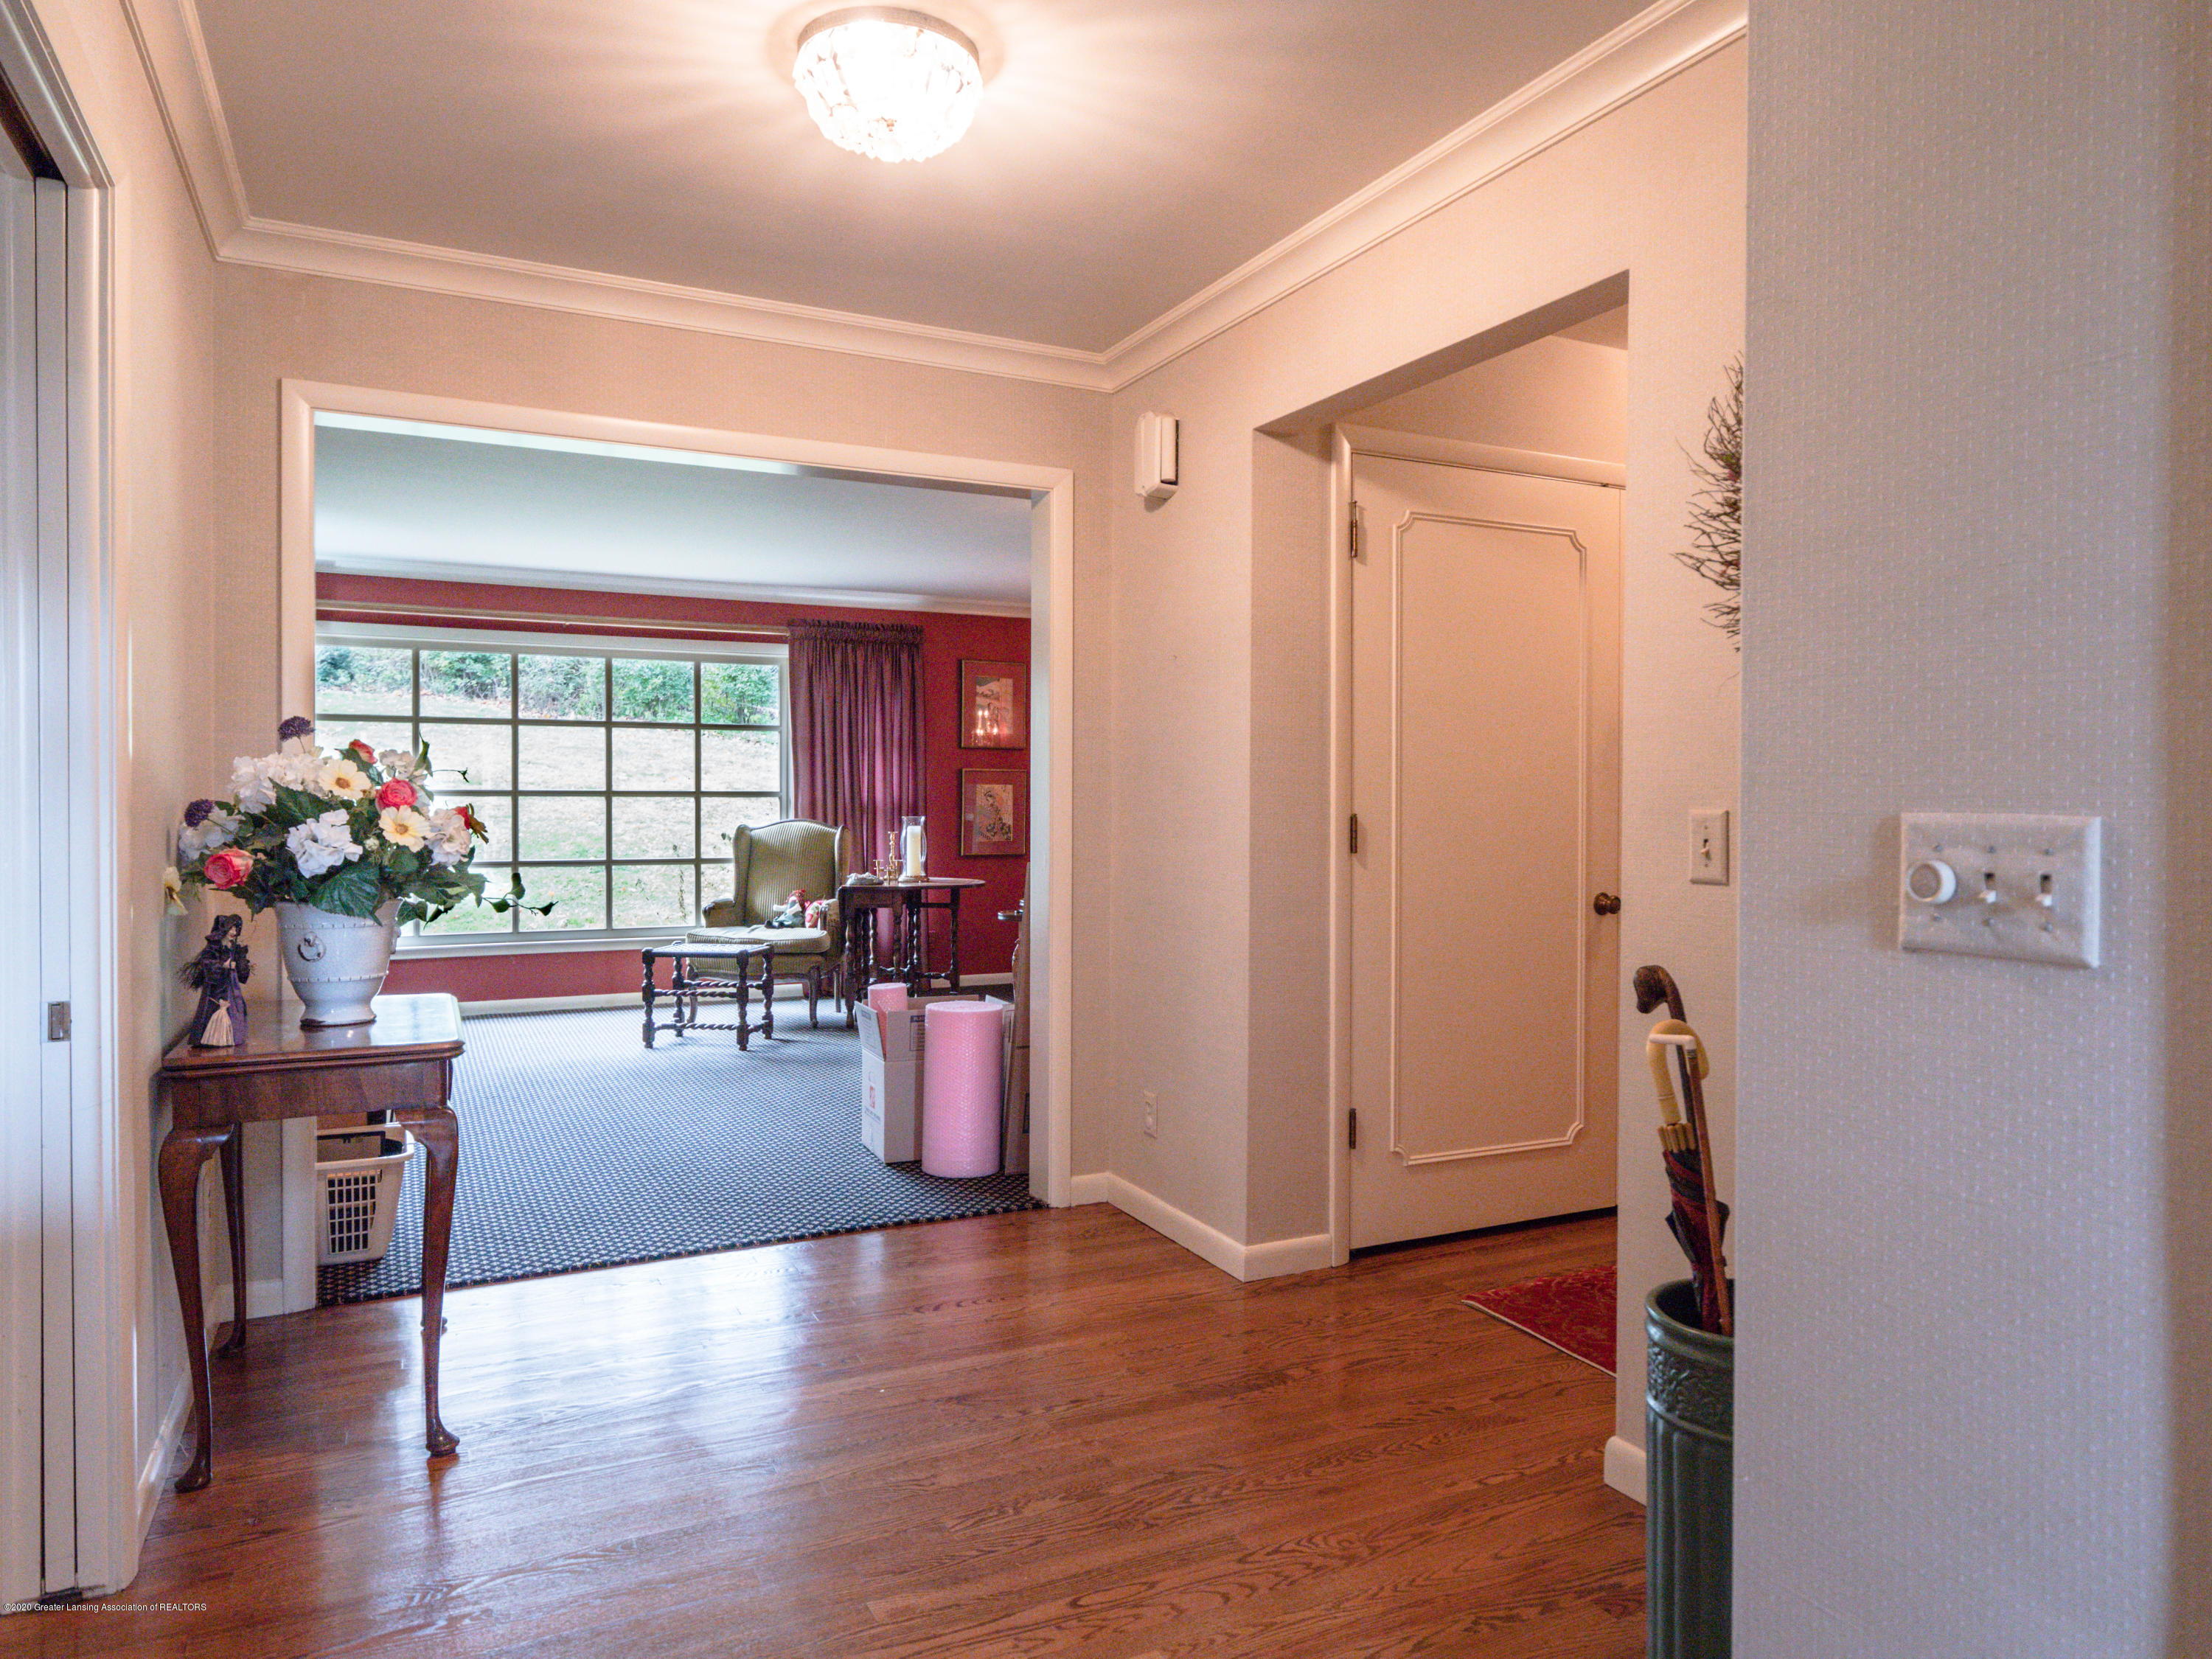 553 Southlawn Ave - 553_Southlawn_Ave-7 - 3